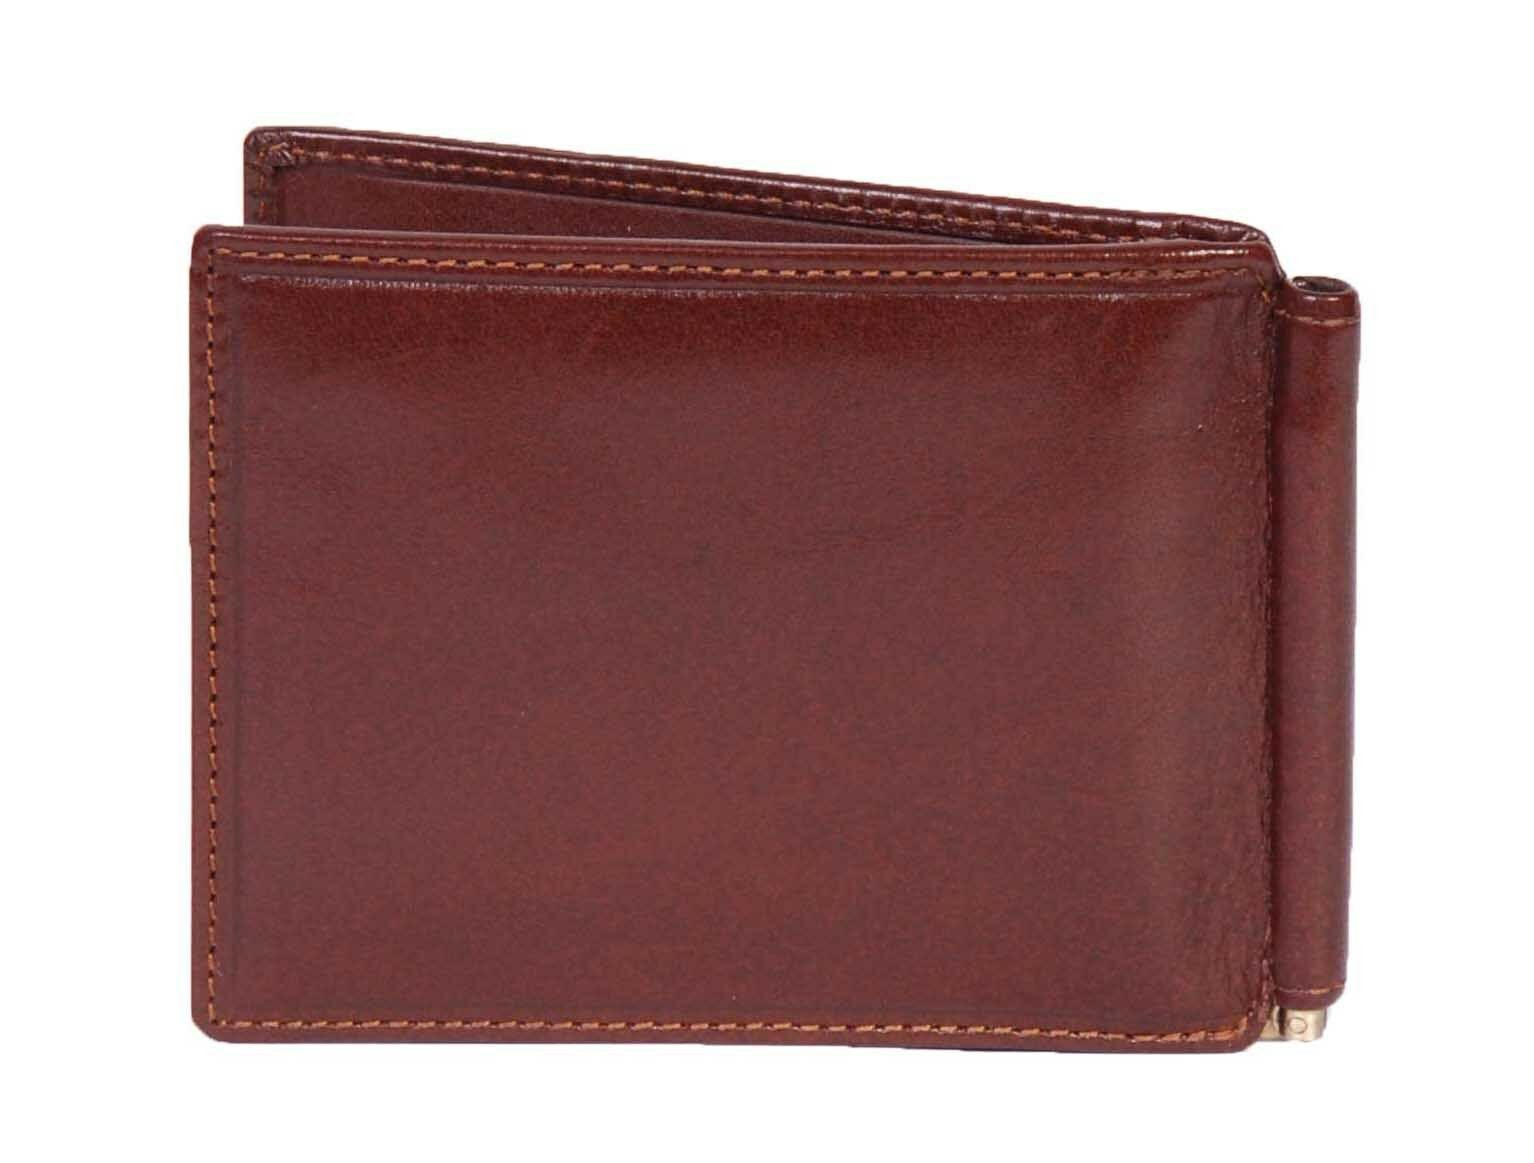 Mens BROWN Leather Wallet Slim Banknotes Money Clip Credit Cards Gift Box Dollar